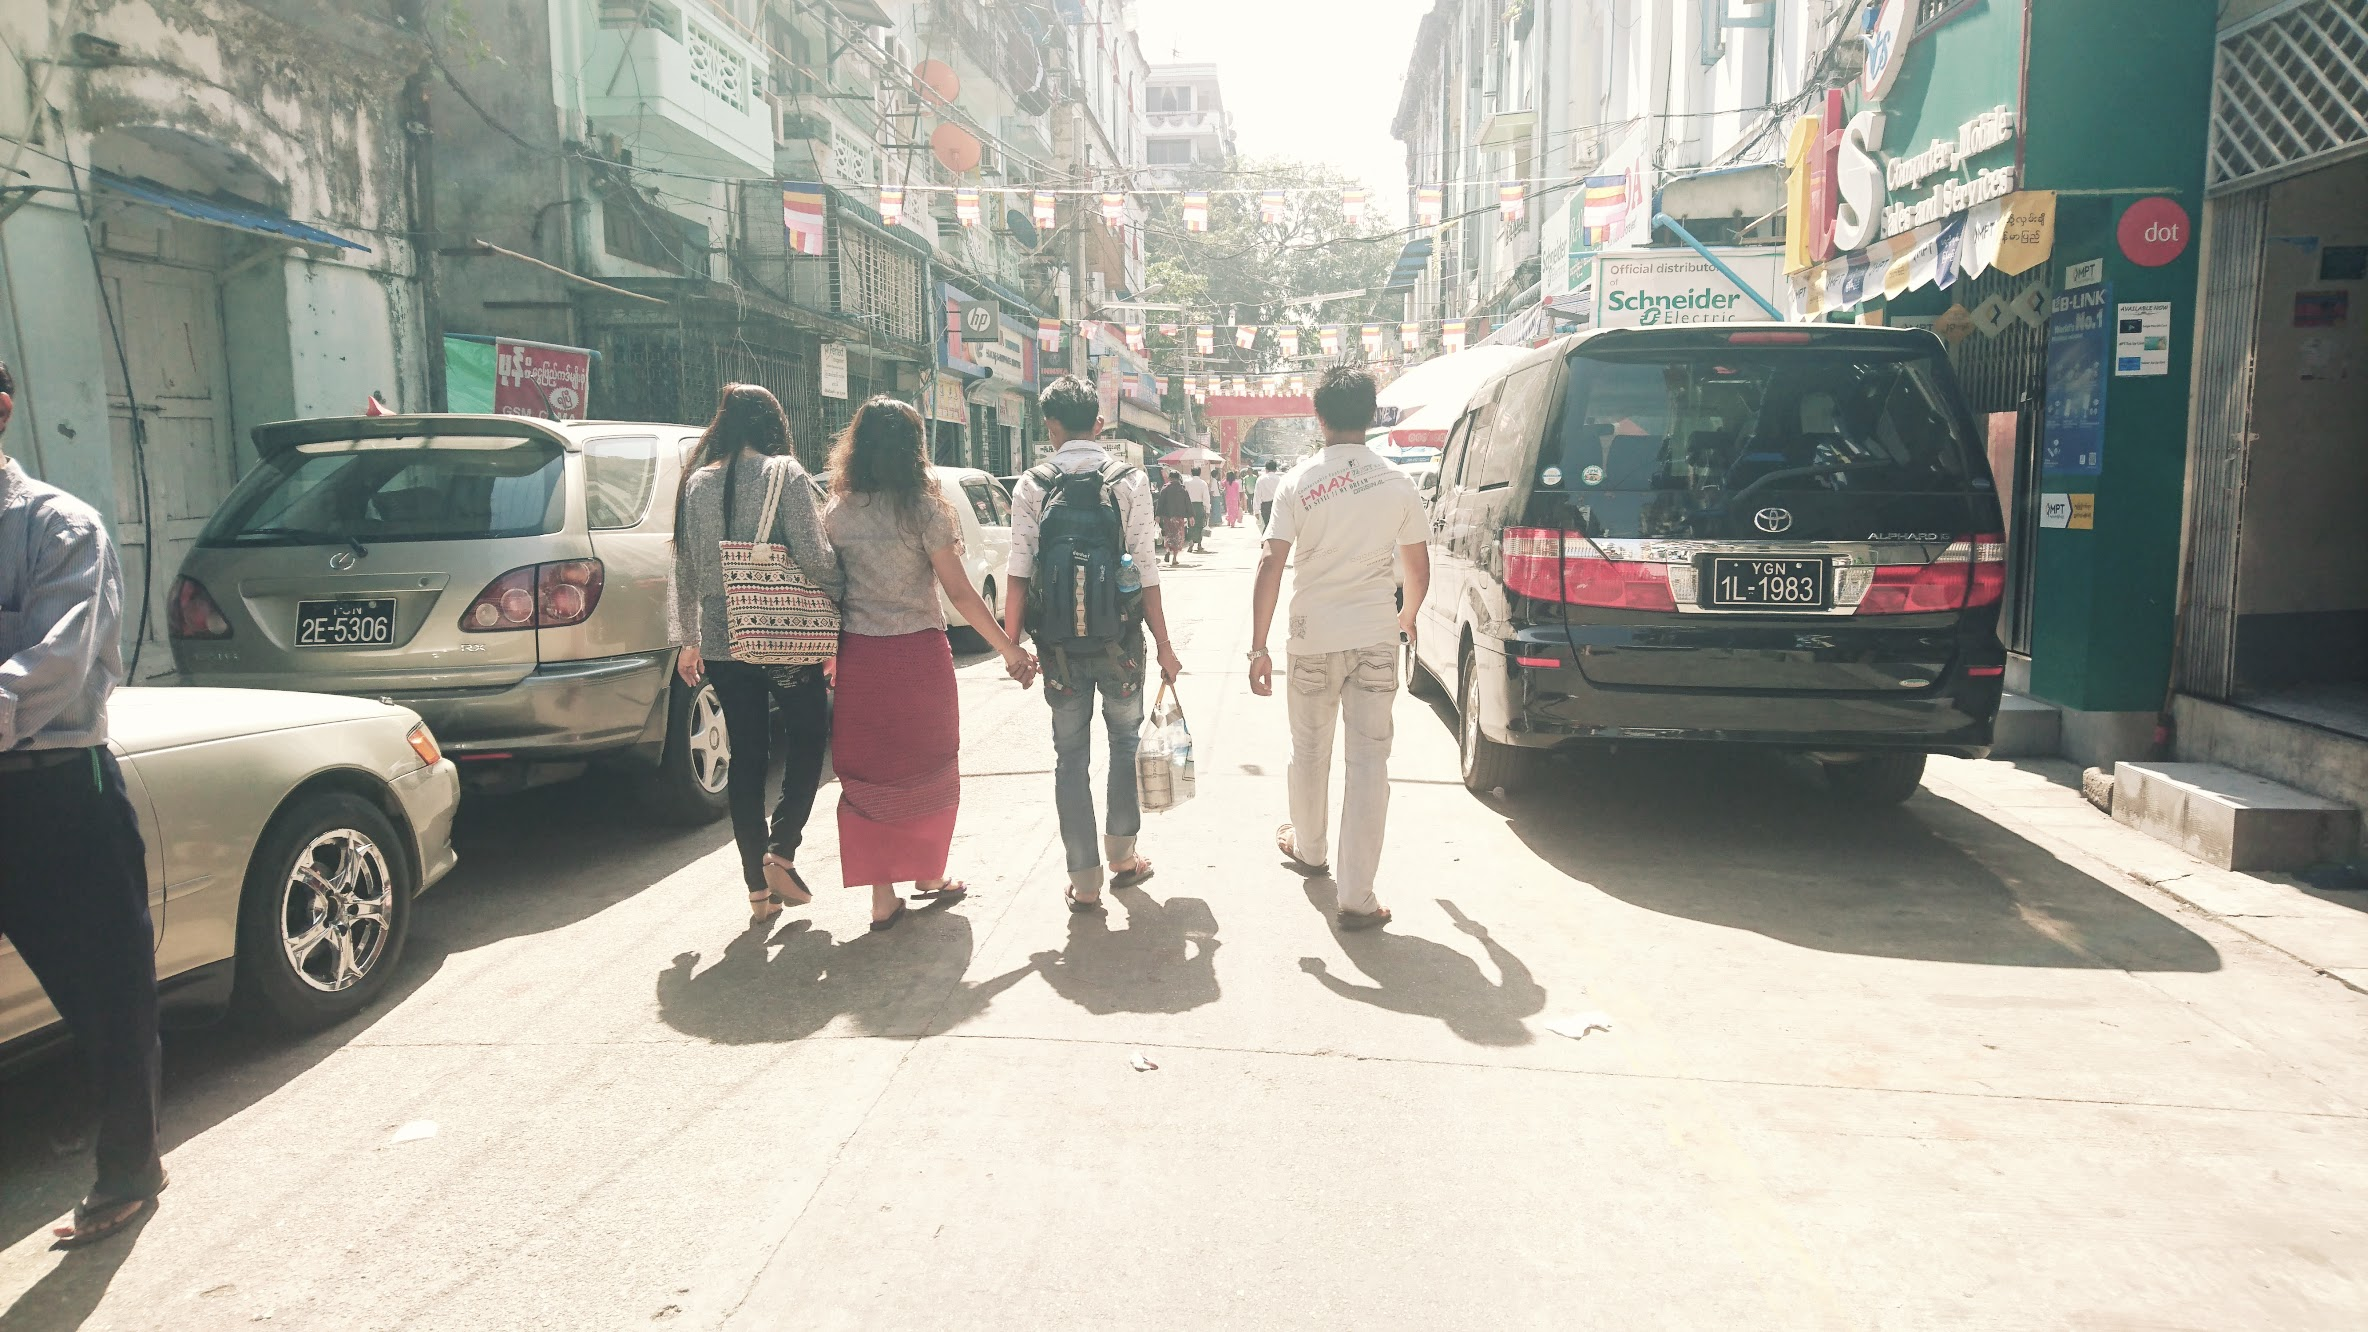 A photo that we feel captures the yin and yang of young Burmese culture today. In the past, everyone big and small wore the longyi and handholding was only permissible between people of the same gender (as a sign of close friendship). Now, teenagers are donning western garb more and more, and you see an increase in public displays of affection between couples.